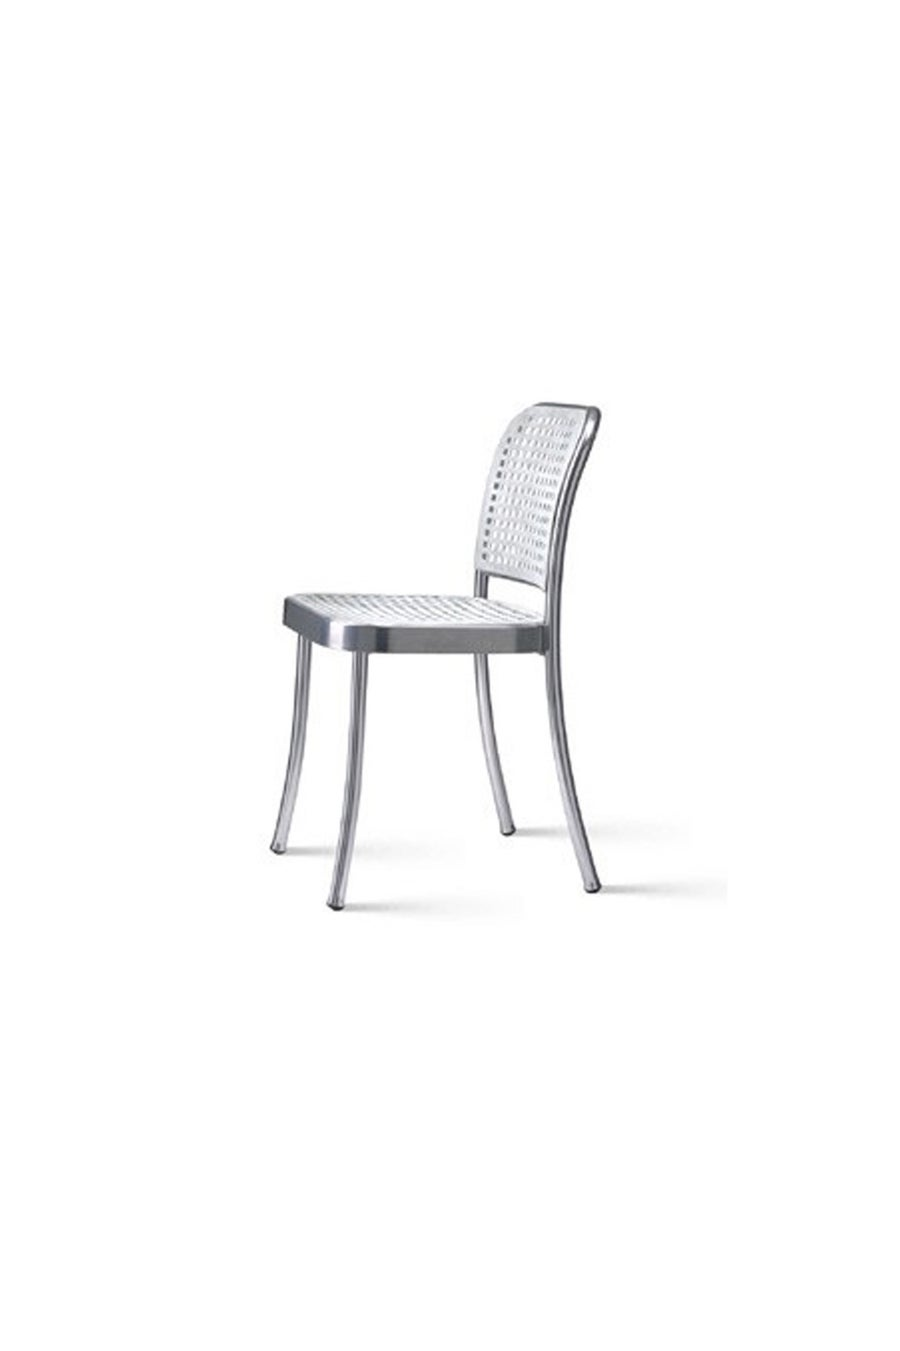 Image of SILLA METÁLICA / 280.00 € / -60%